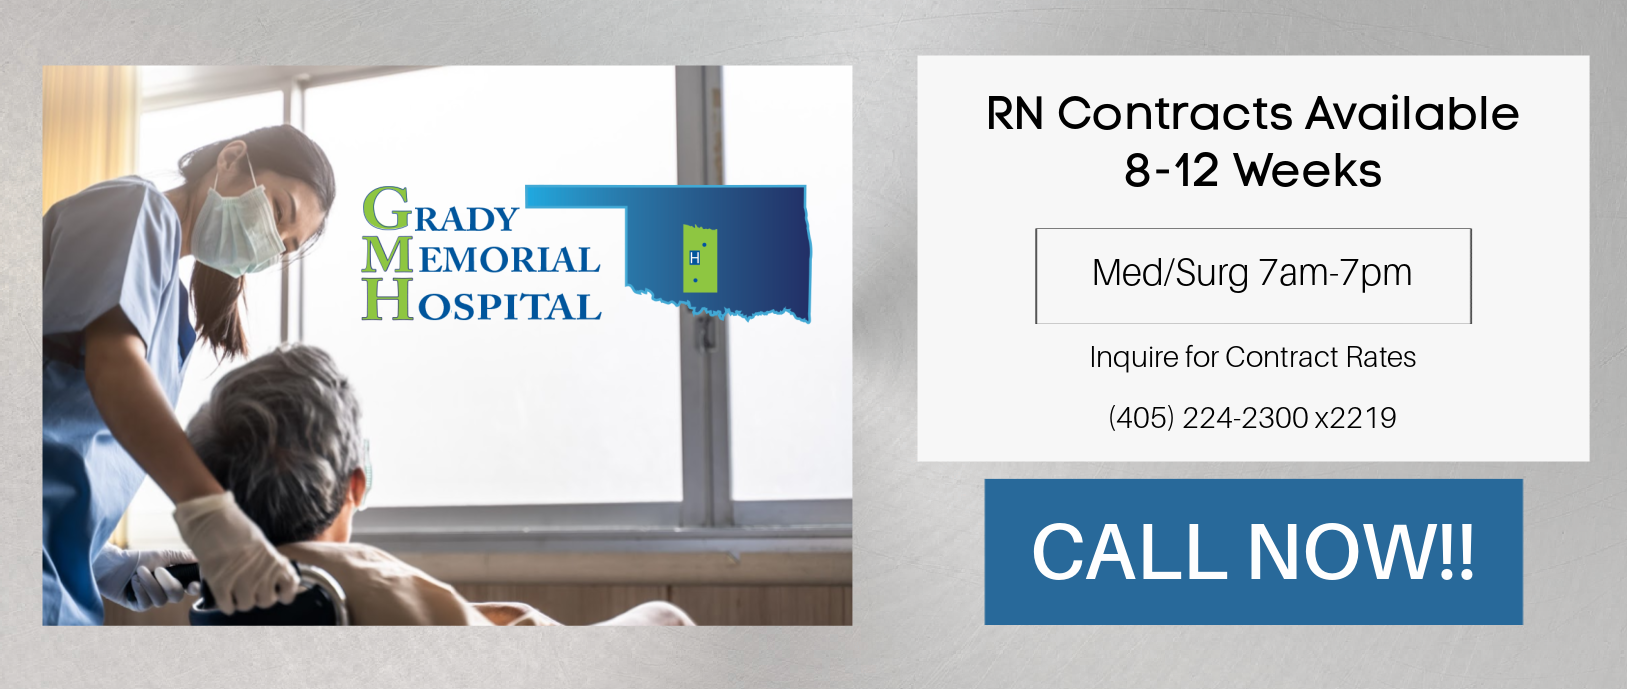 RN Contracts Available